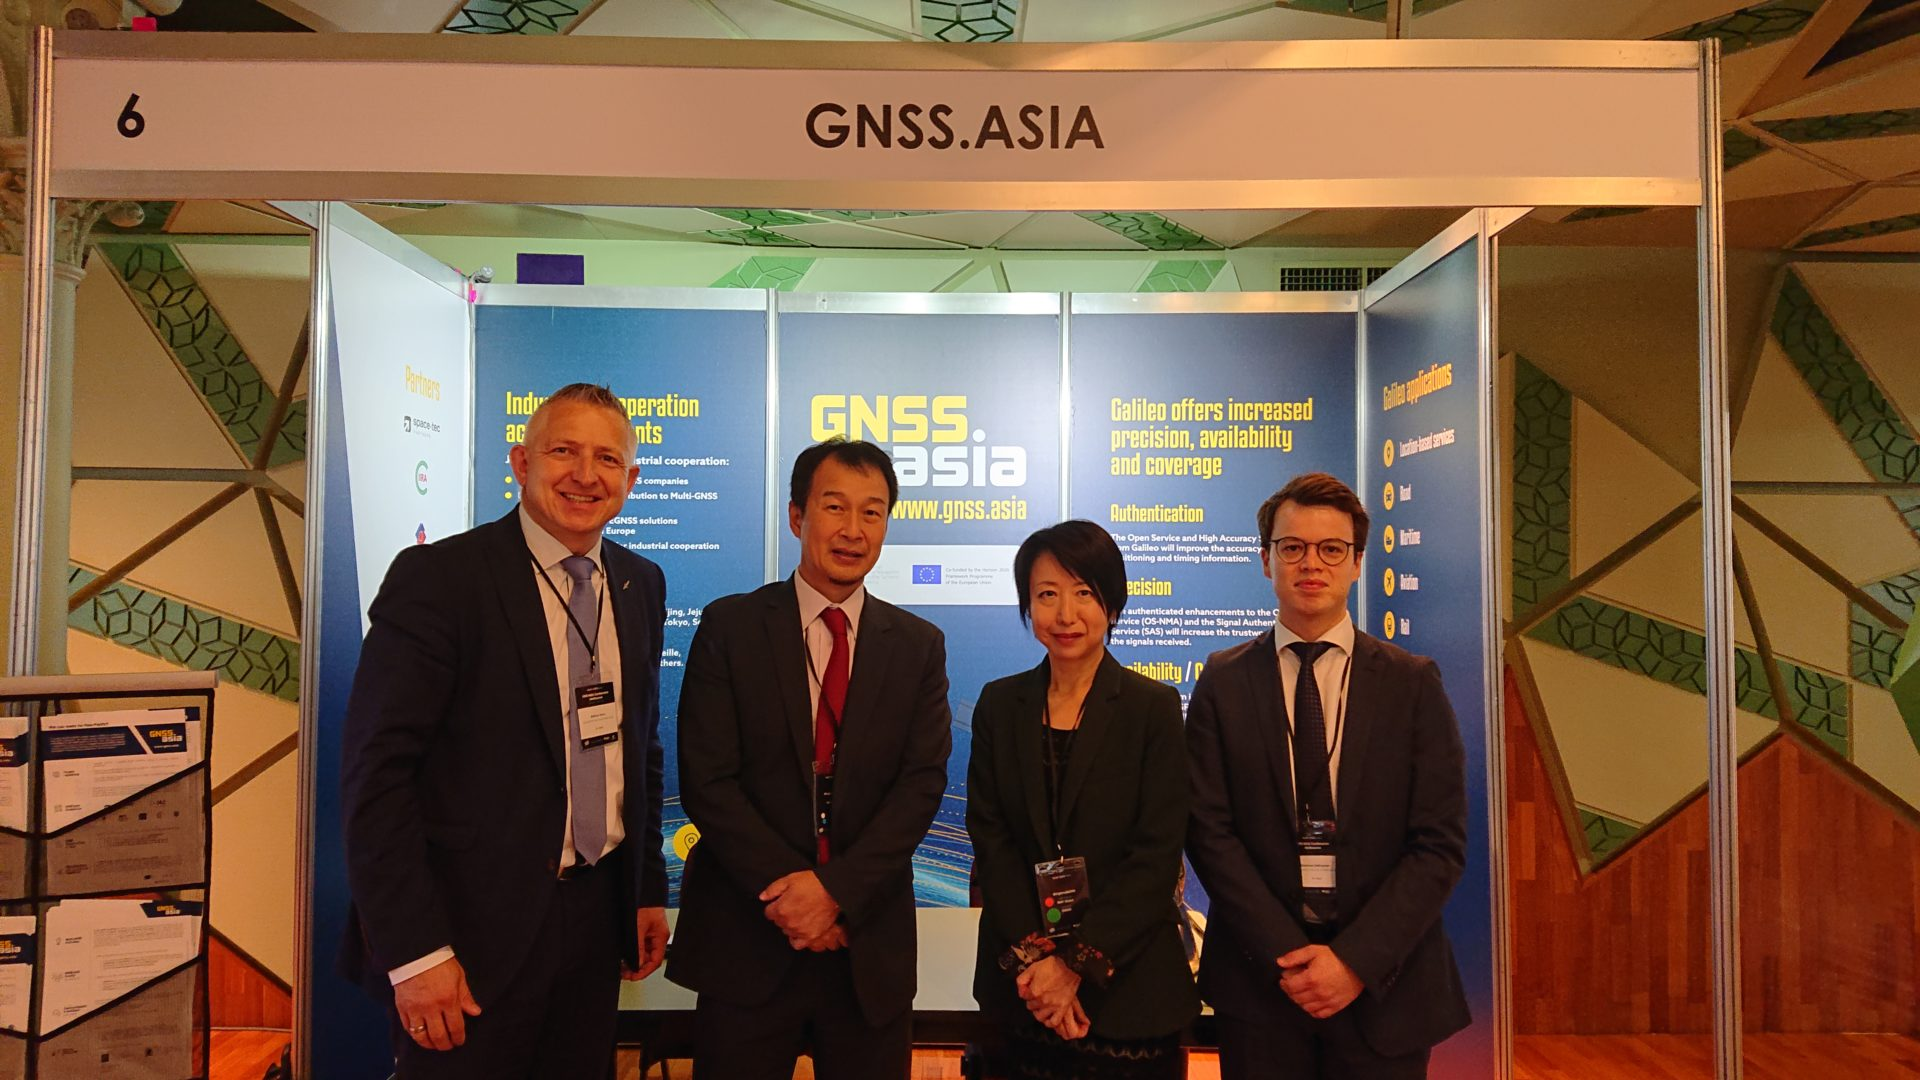 Successful Discussions at Multi-GNSS Asia Conference in Australia